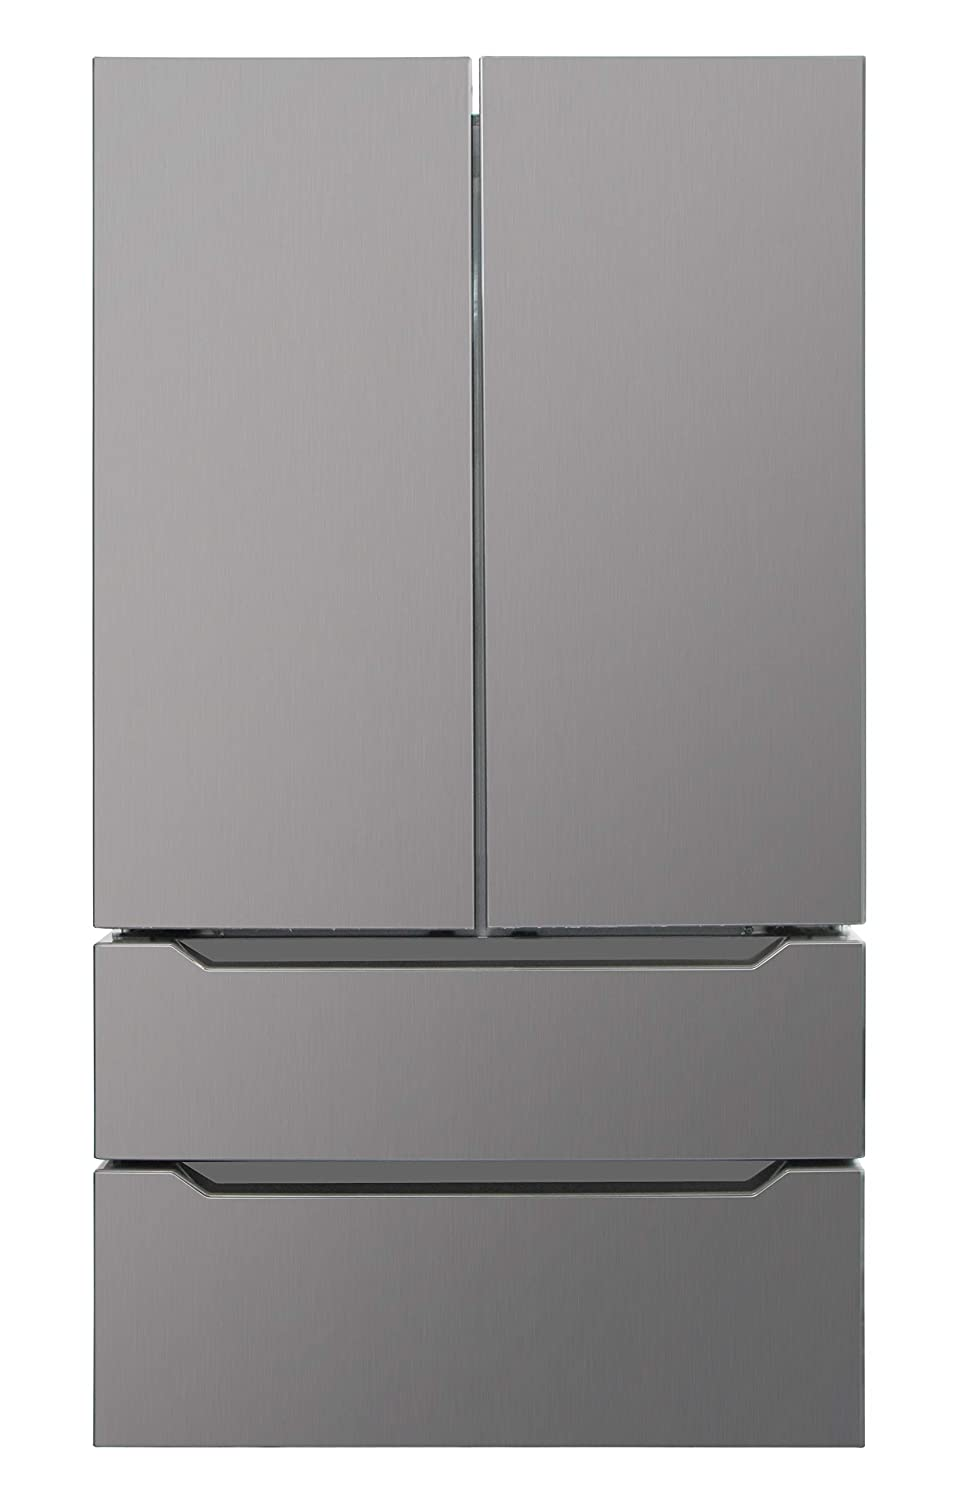 Thor Kitchen Black Stainless Steel, Automatic Ice-maker, 36inch Wide Refrigerator with Counter Depth French Door